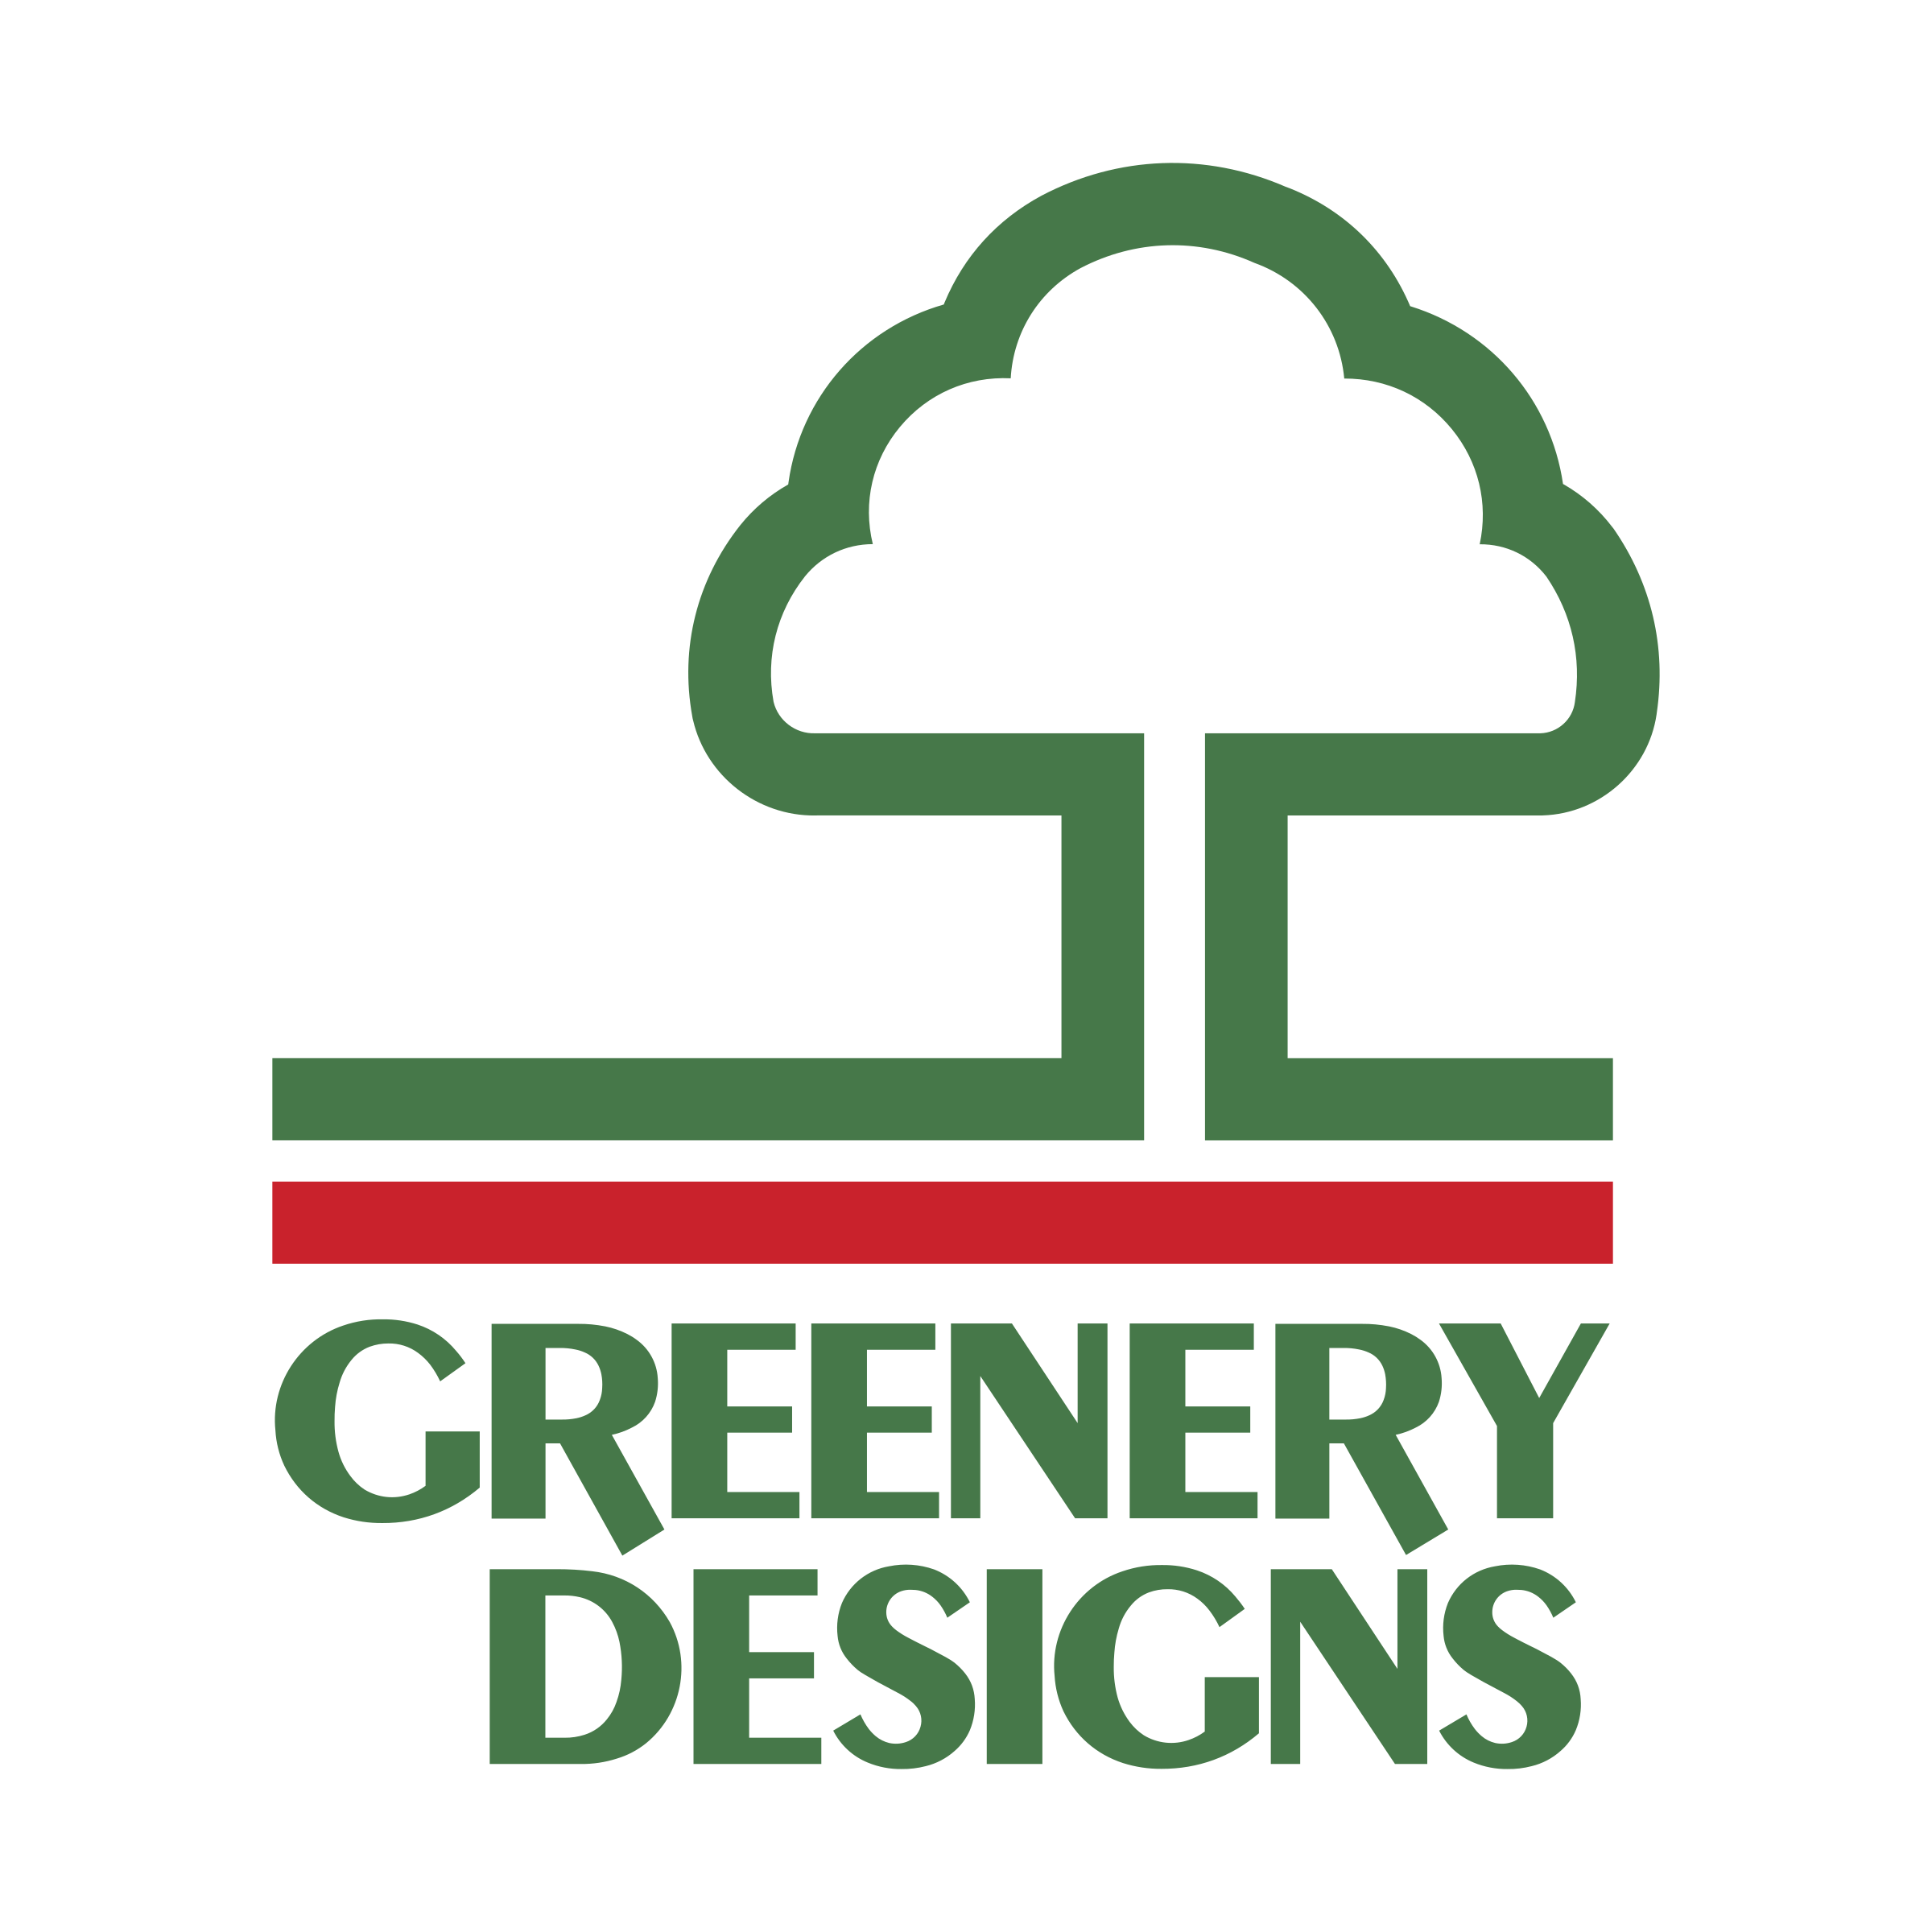 Greenery vector. Designs logo png transparent